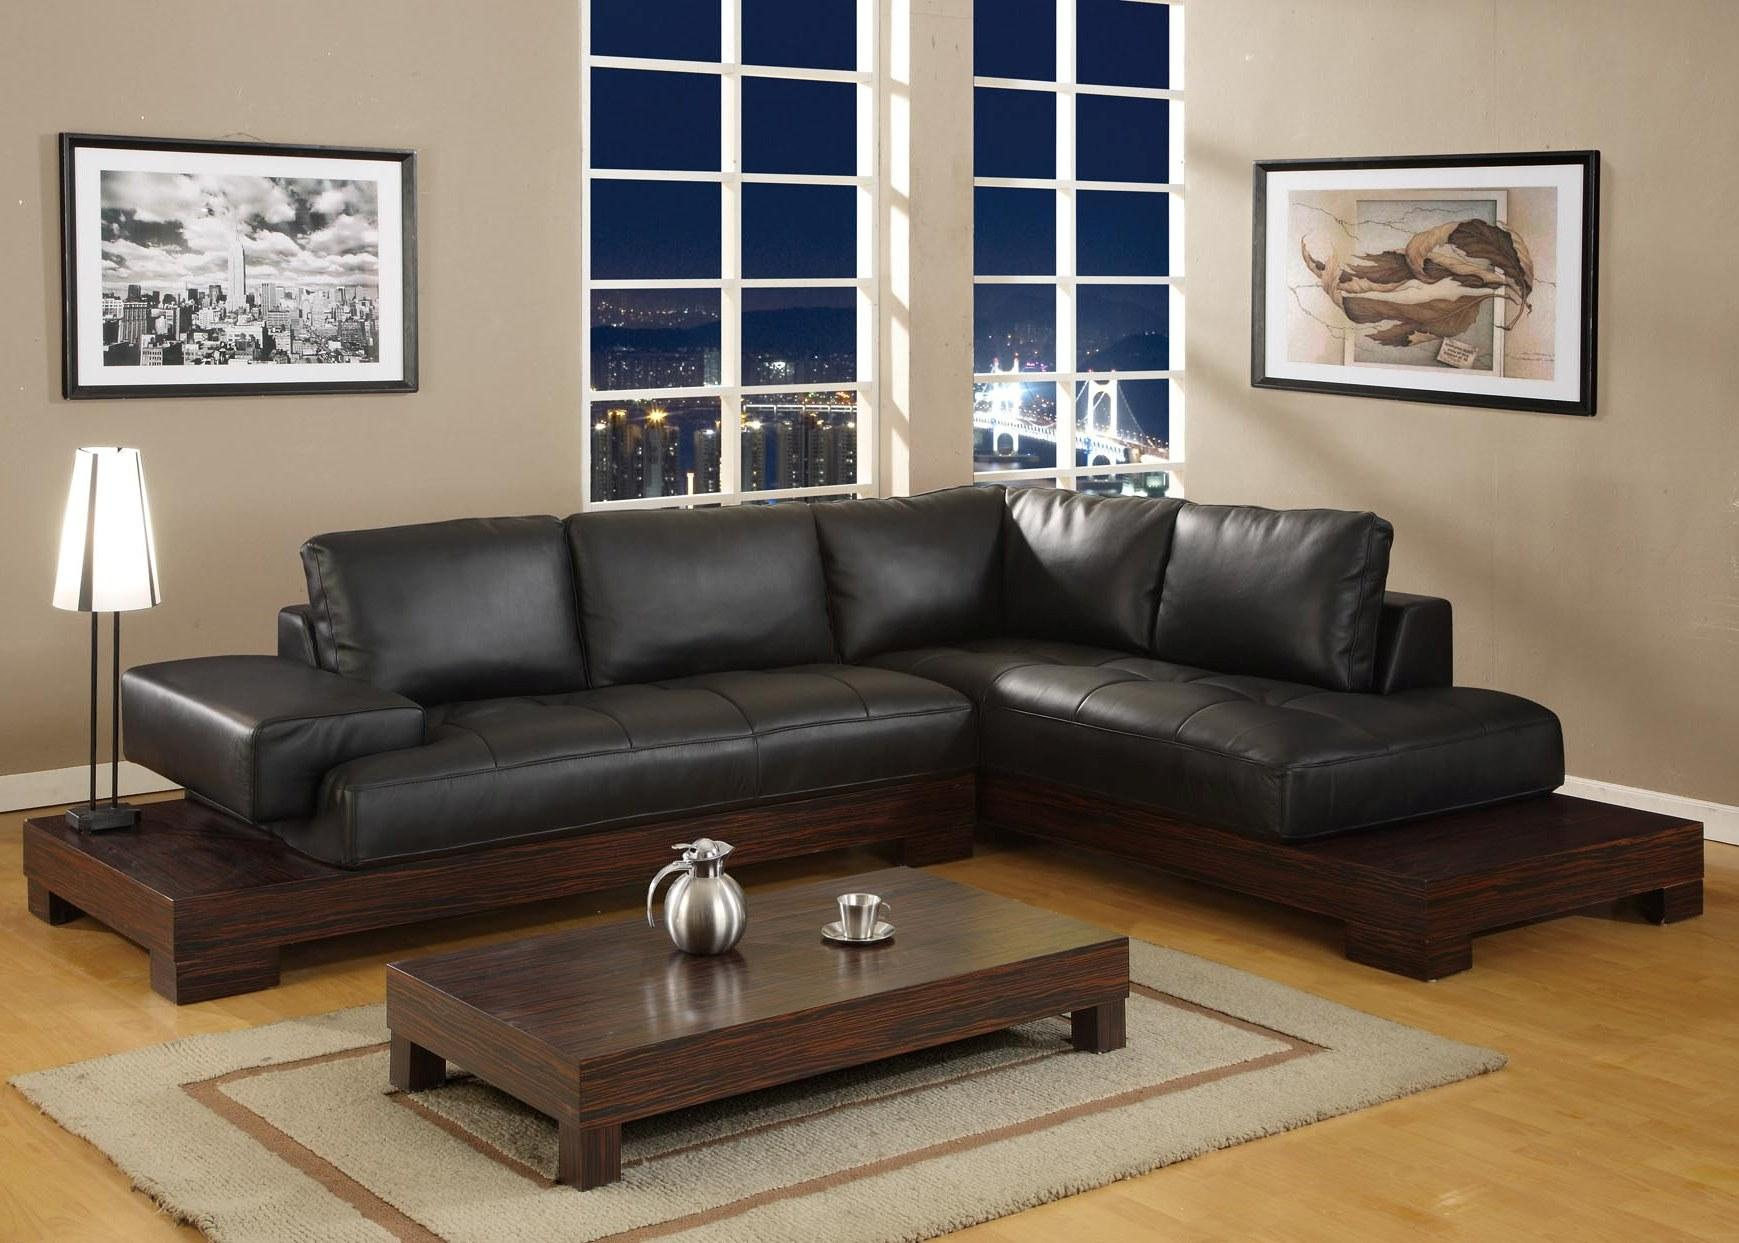 If your small living room is cramped, the last thing you want to do is hang out there. Black Furniture Living Room Ideas - HomesFeed